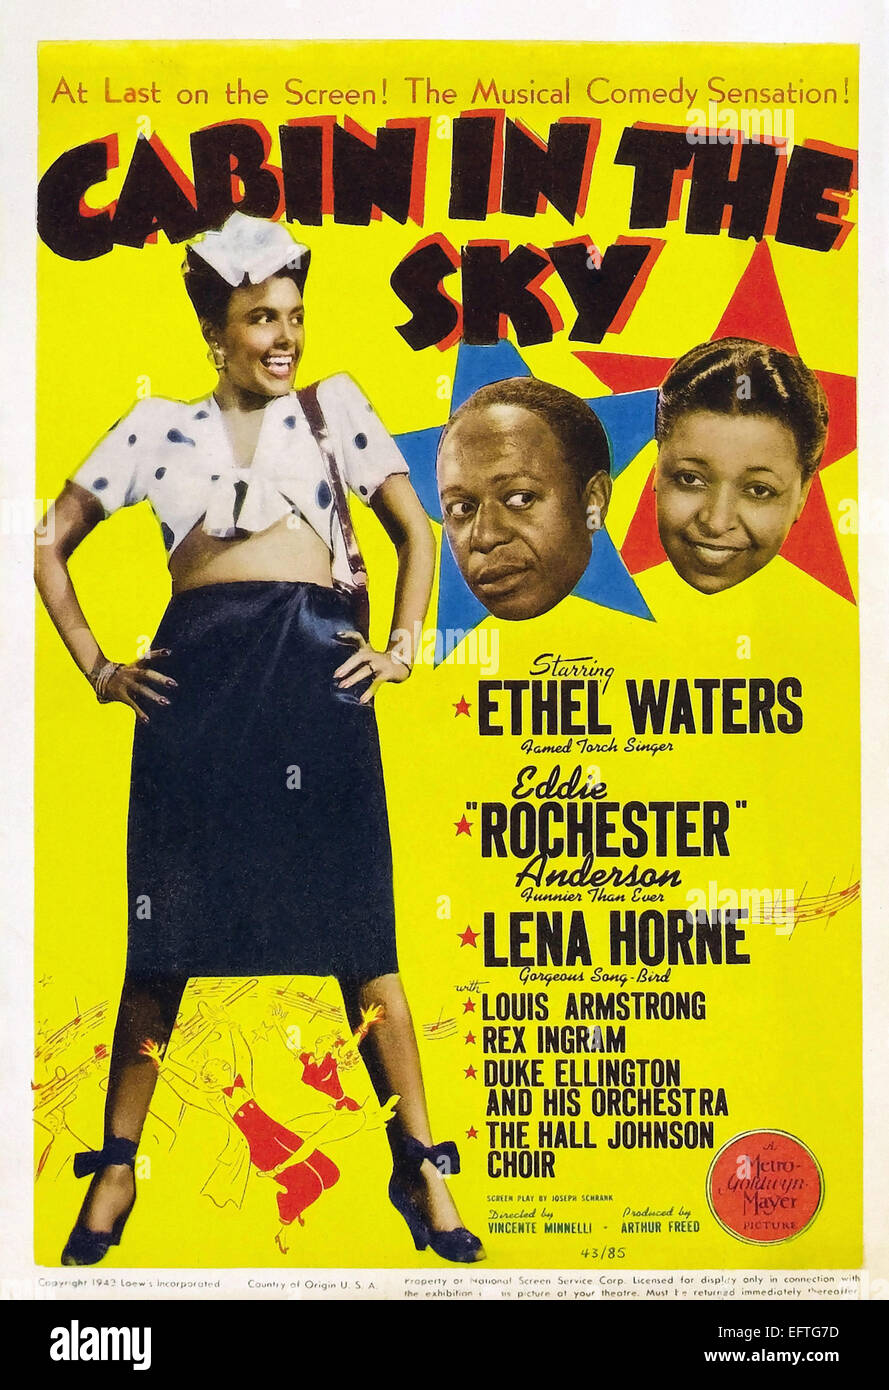 ADVERTISING MOVIE FILM MUSICAL CABIN SKY COMEDY AFRICAN AMERICAN POSTER LV1073